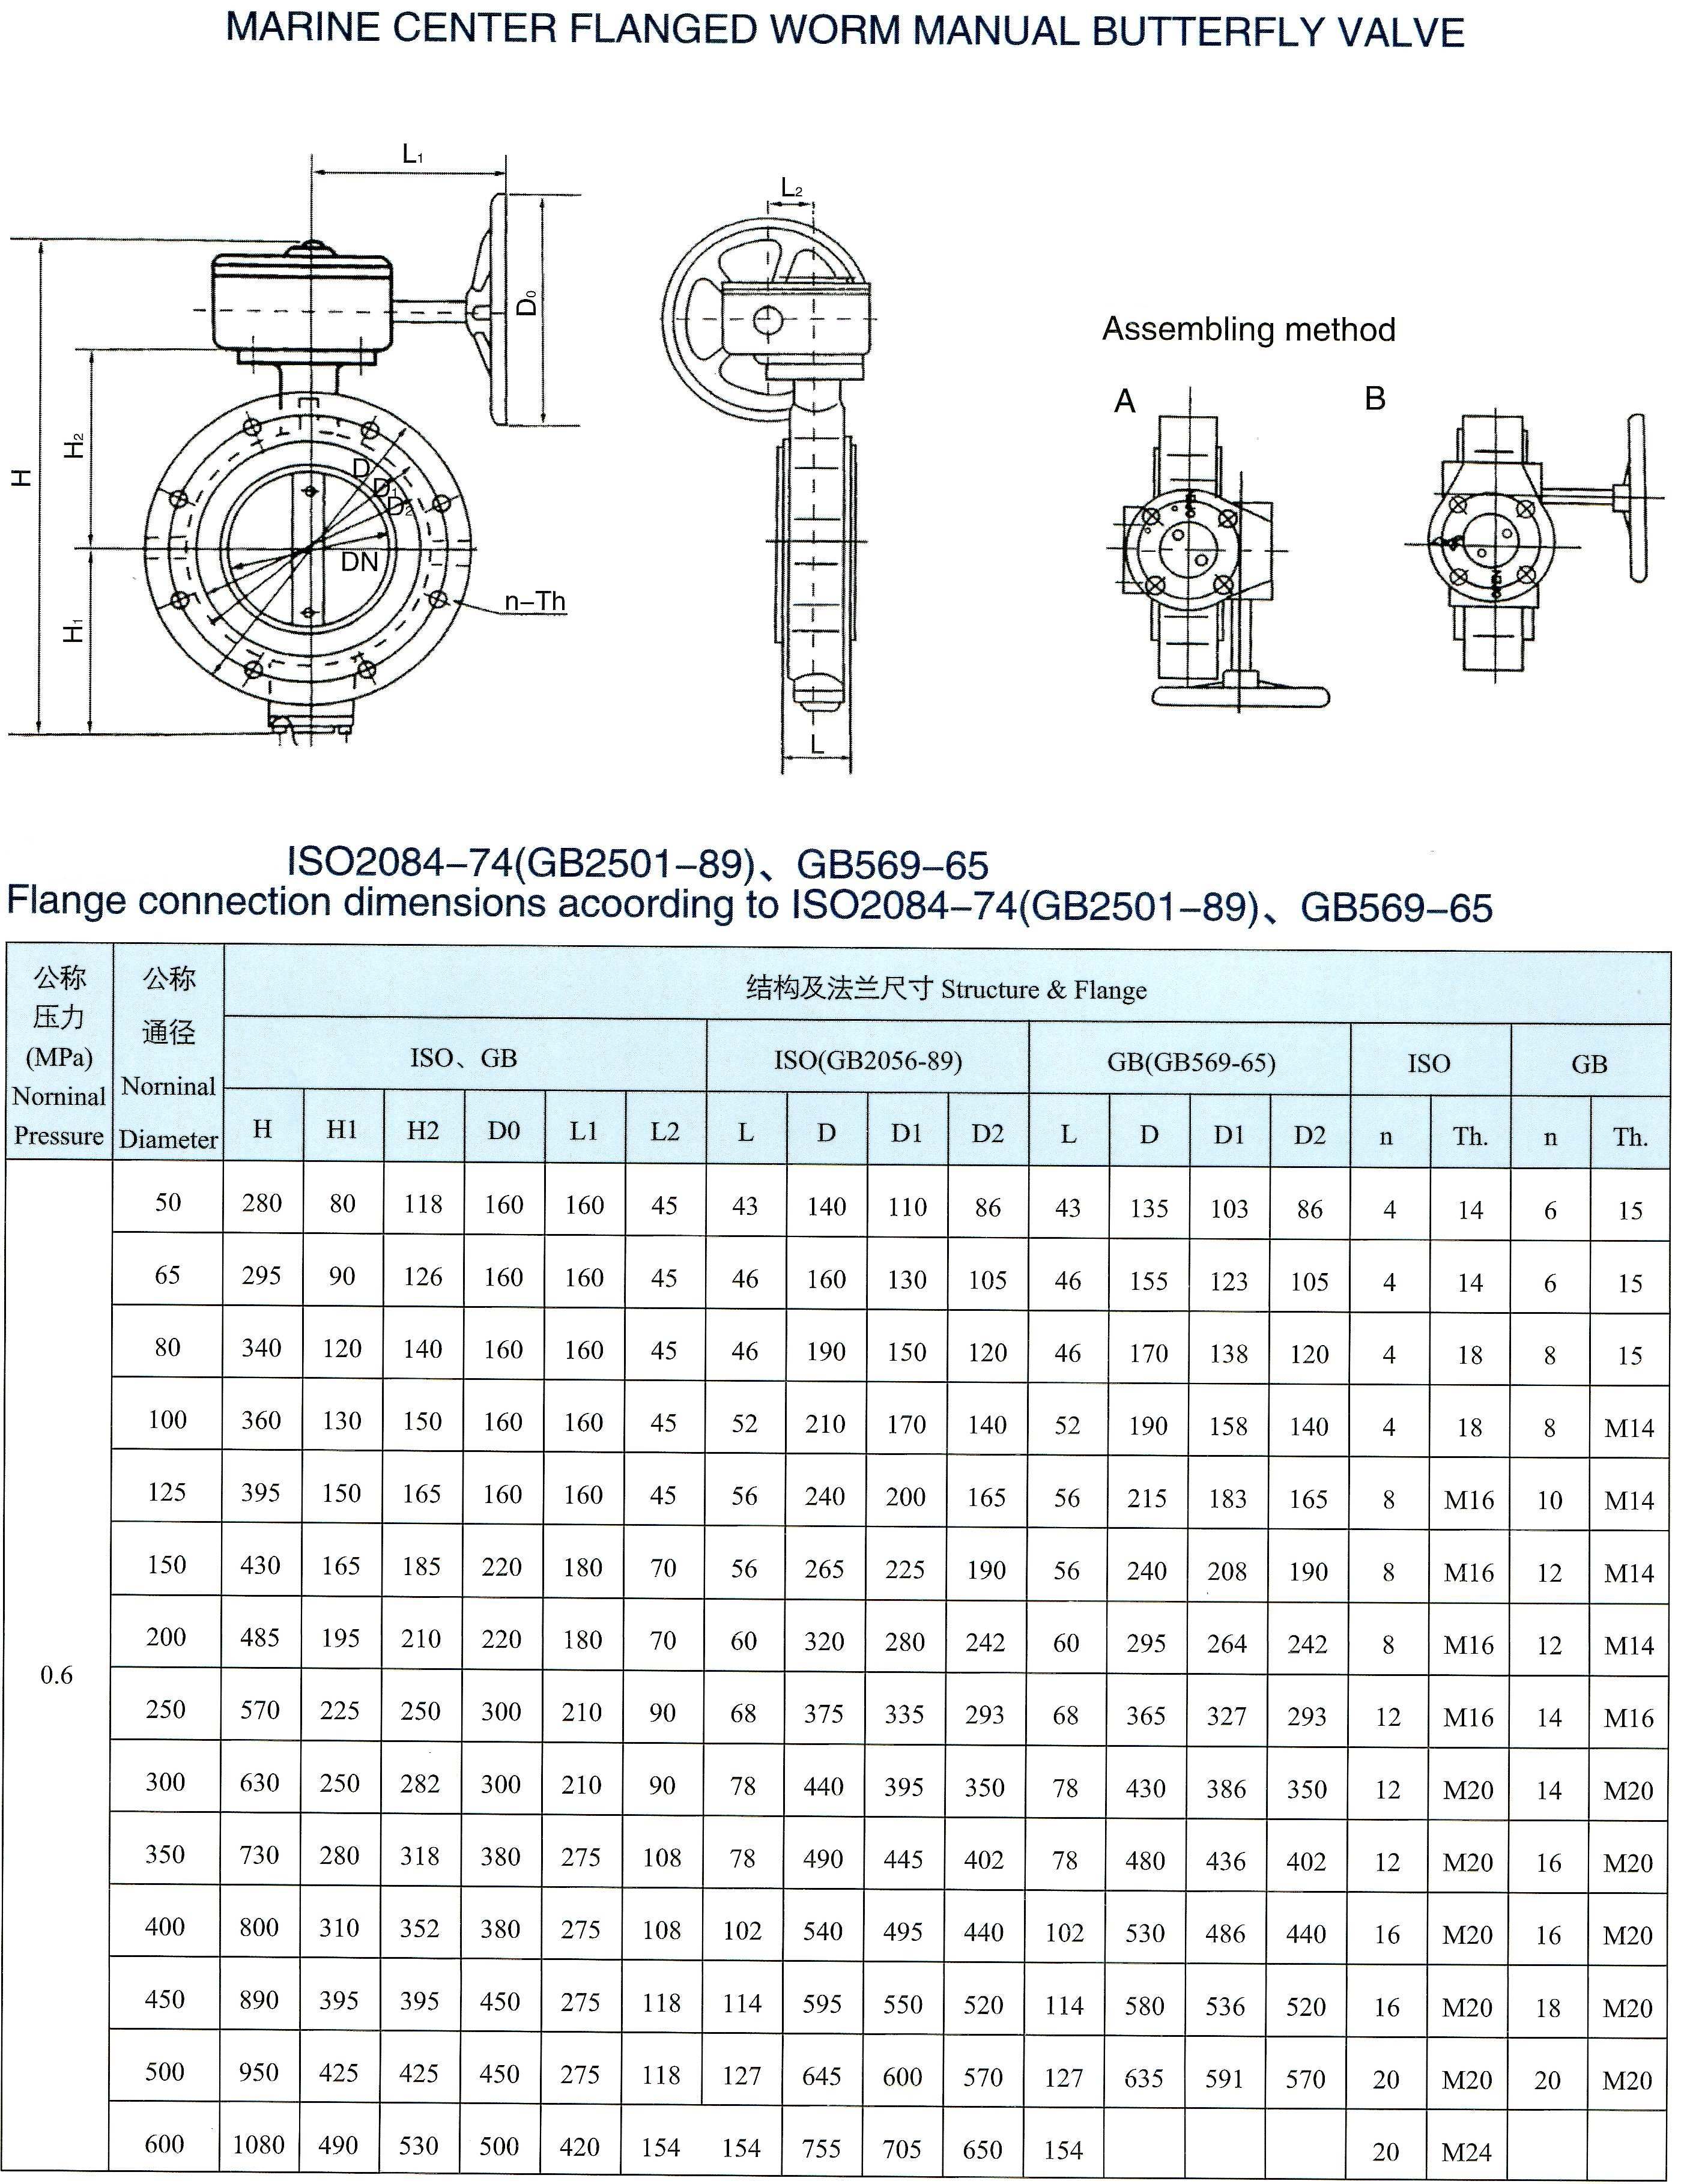 marine center flanged worm manual butterfly valve(FSG)